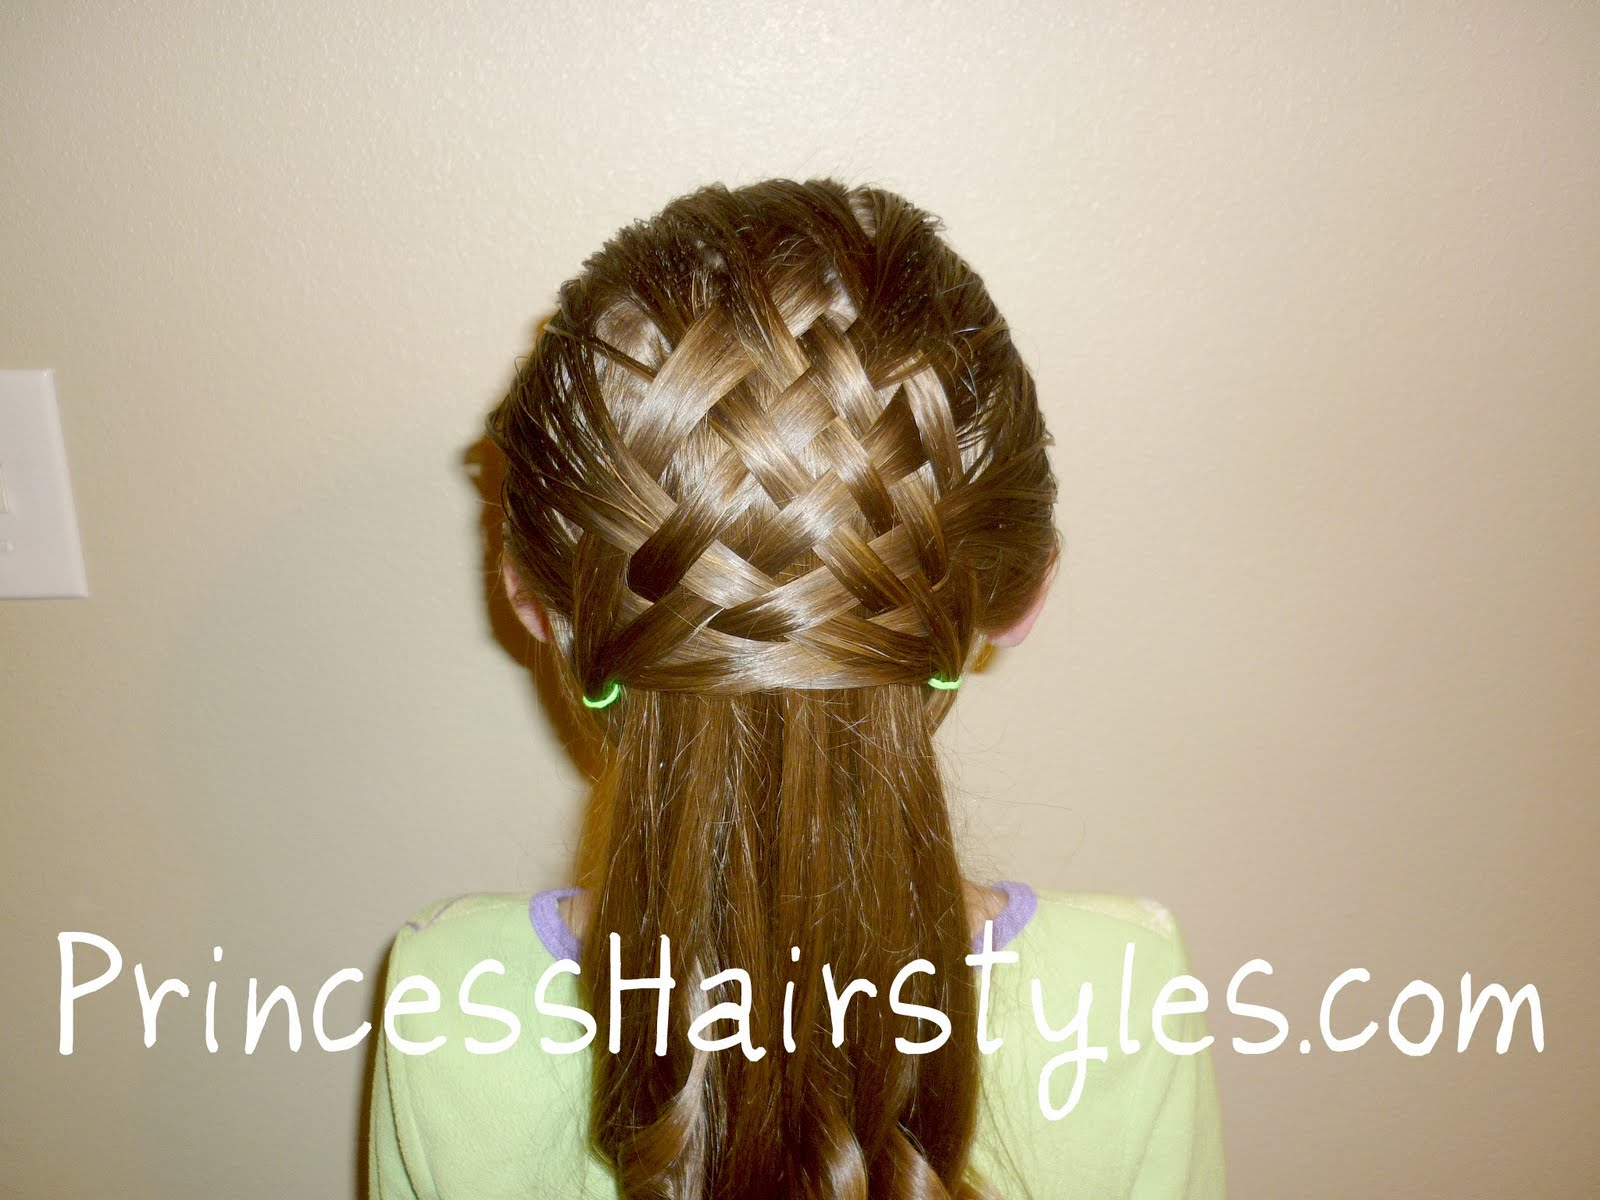 Basket Weave Hairstyle Design (By Request)